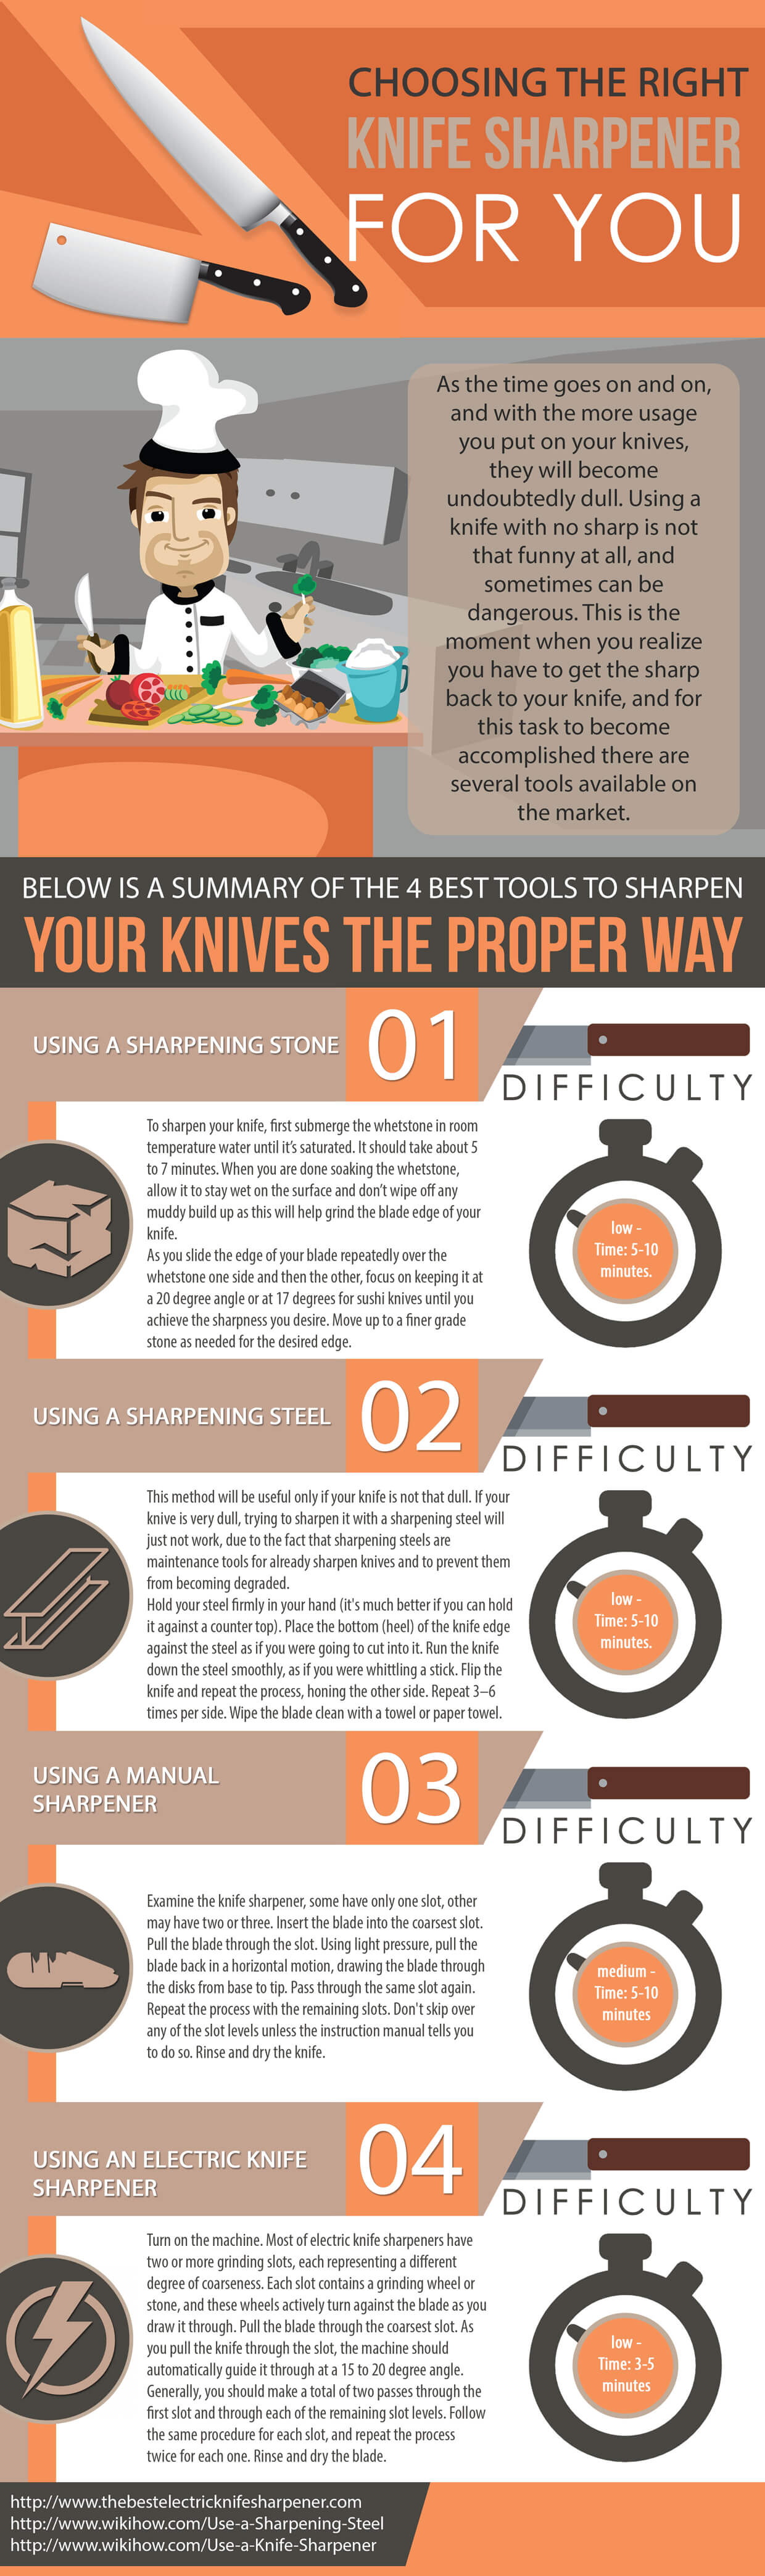 how-to-choose-knife-sharpener-infographic-plaza